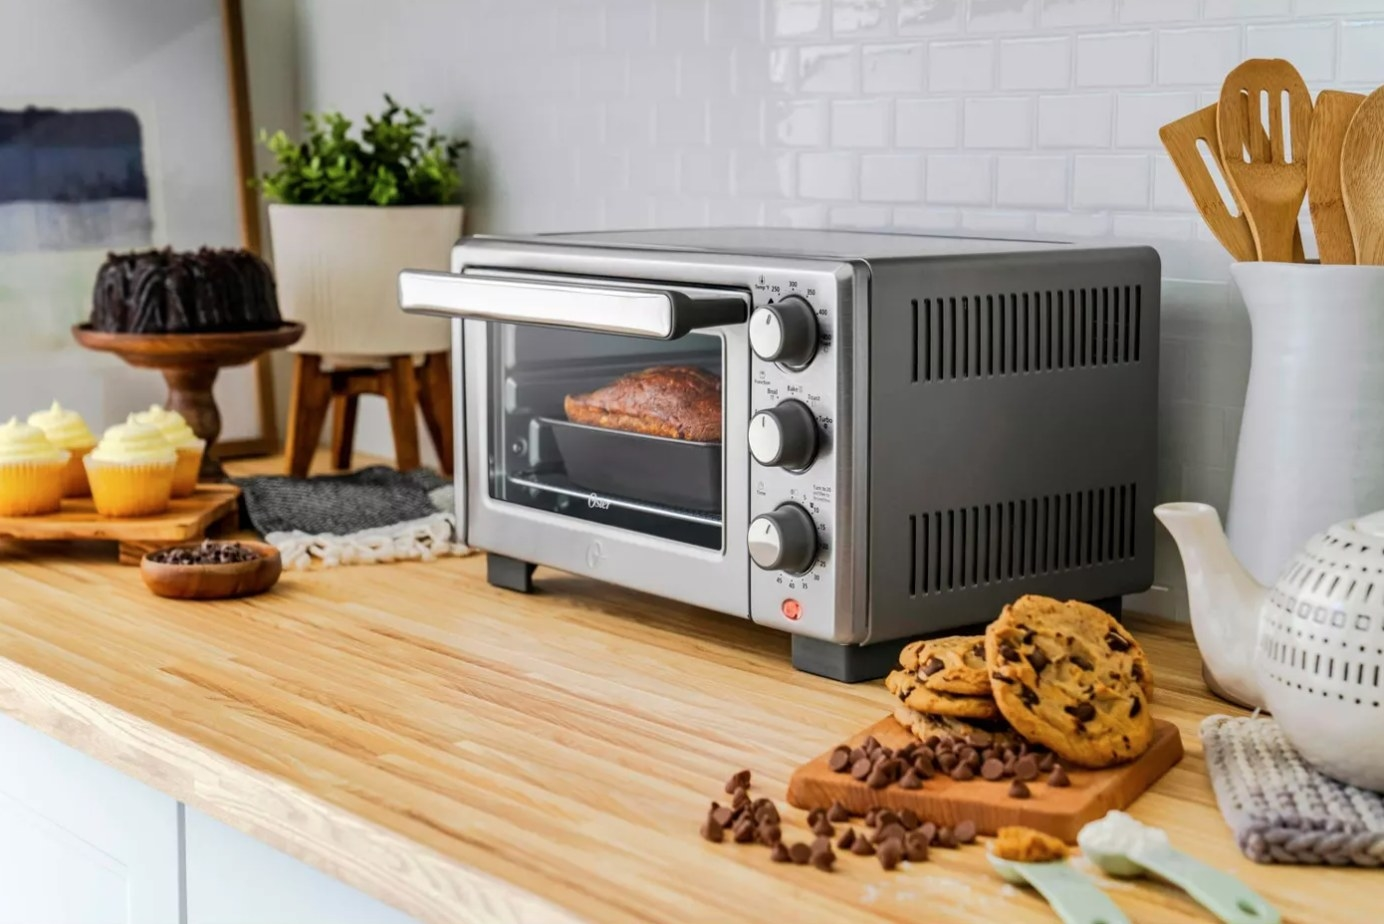 The countertop oven with an air fryer